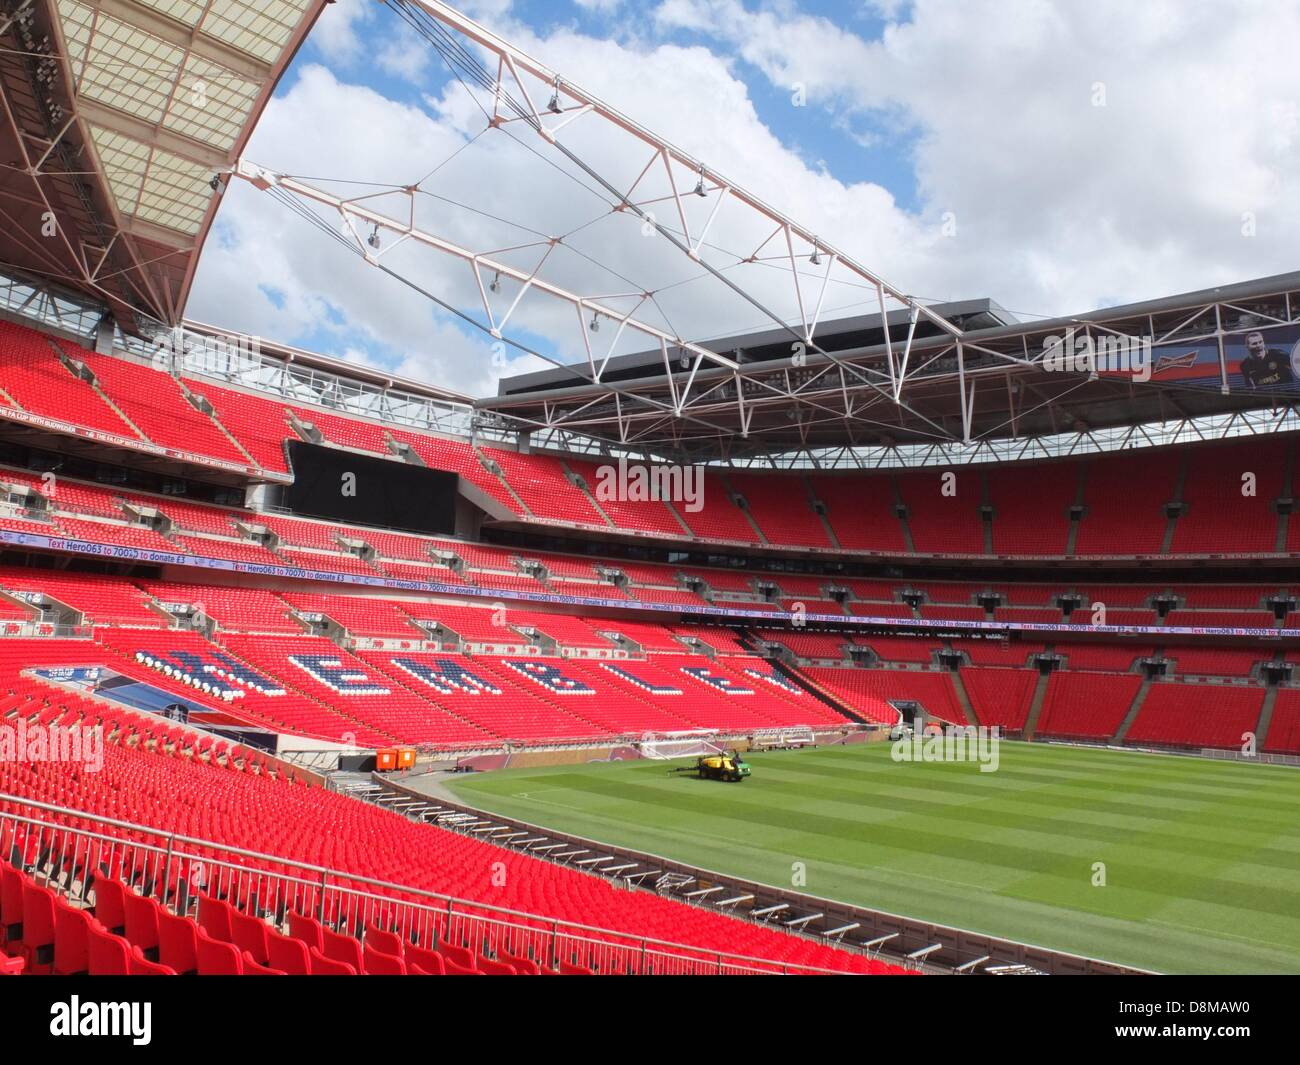 The Wembley Stadium is seen in London, Great Britain, on 9th May 2013. - Stock Image